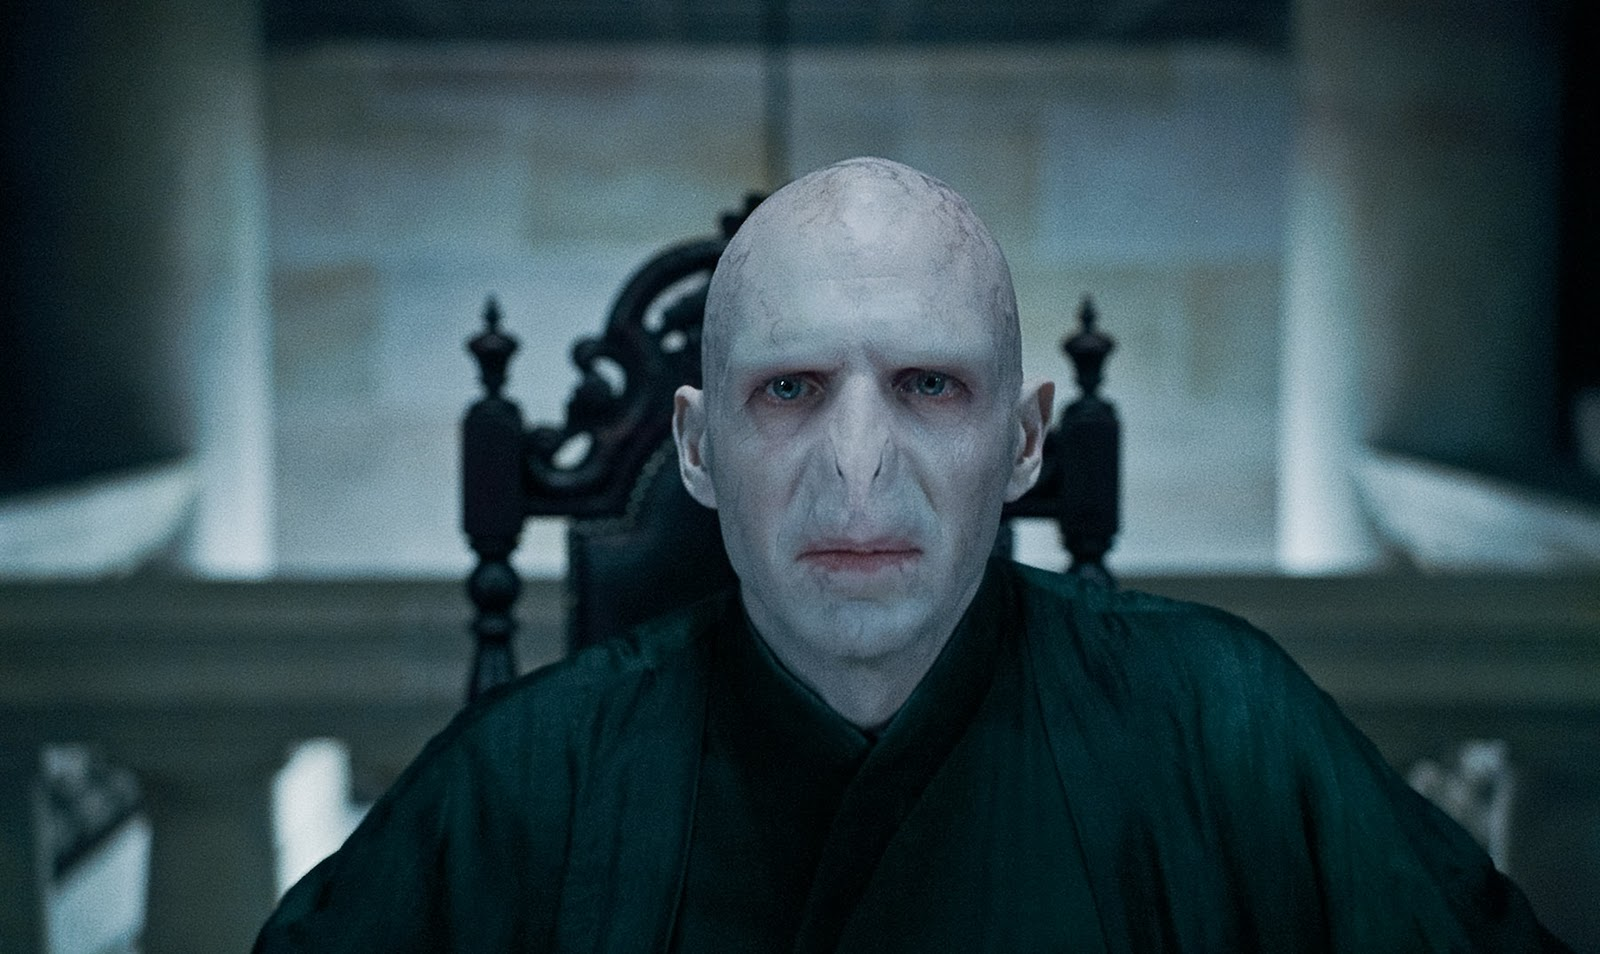 thefaceblog: voldemort: where's my nose?